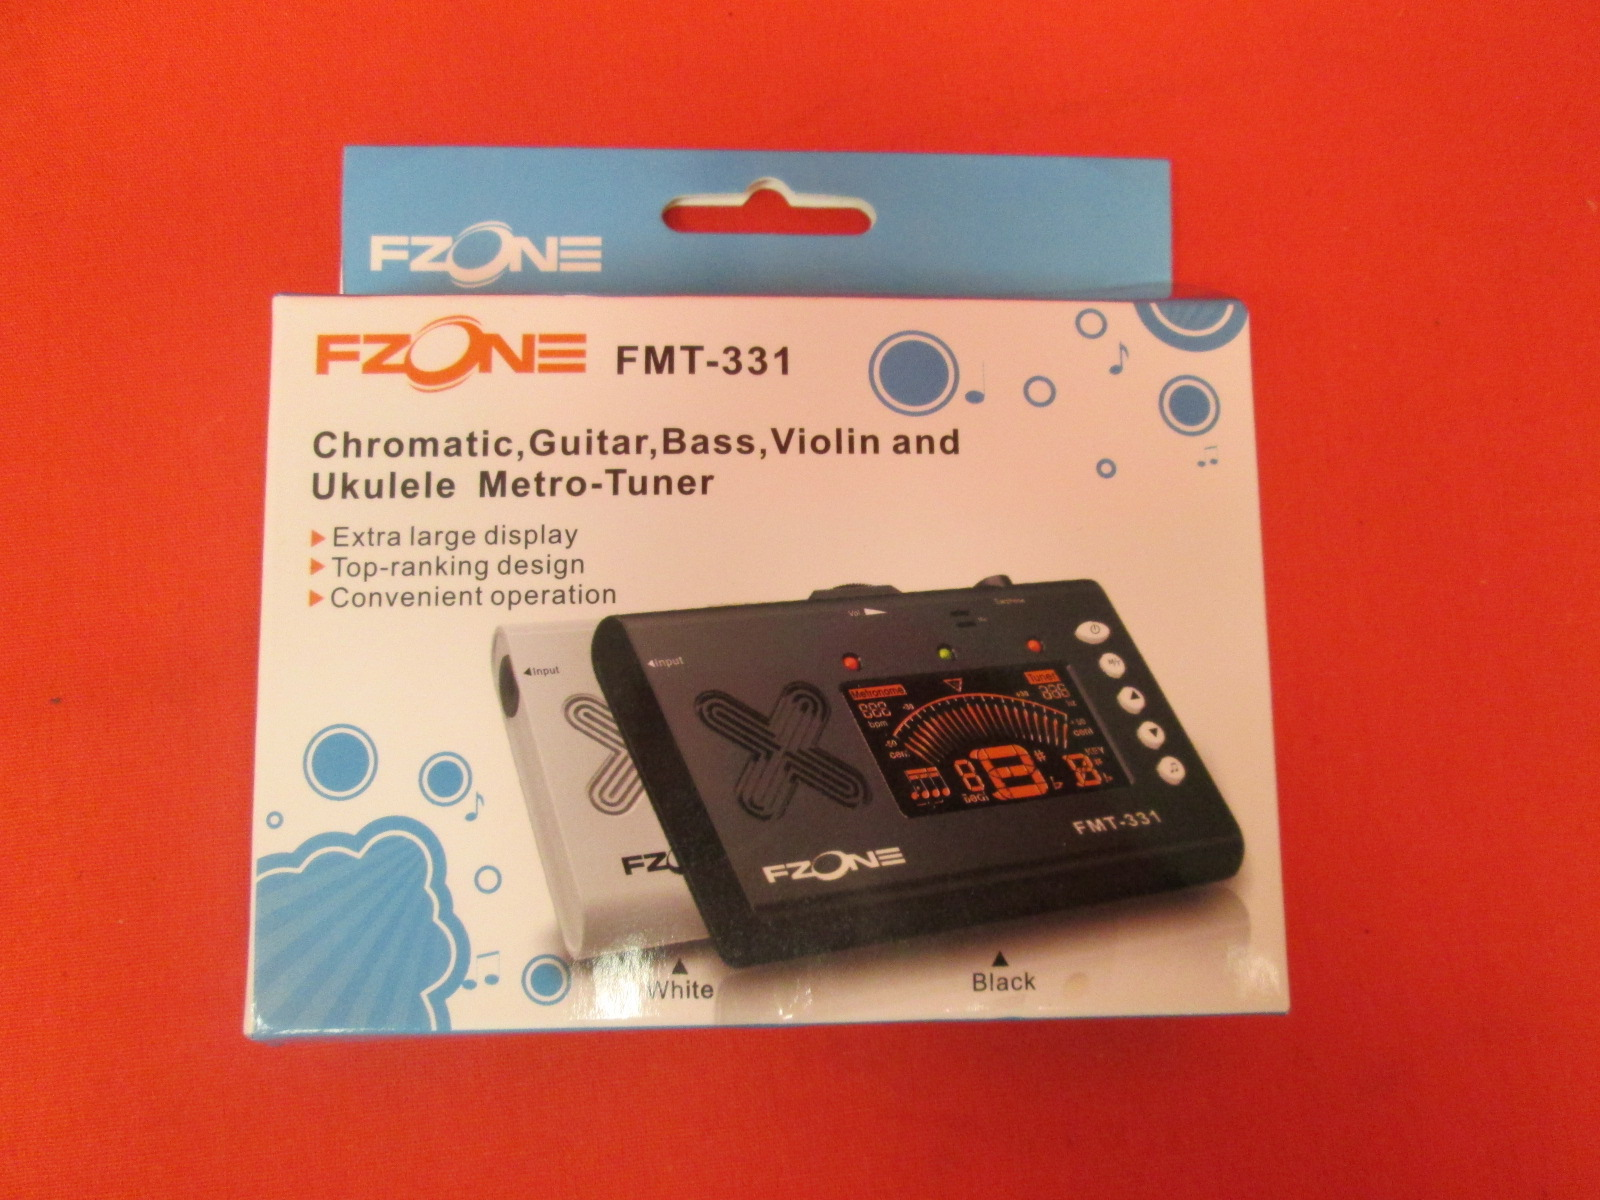 Fzone FMT-331 Metro Tuner For Chromatic Guitar Bass Violin And Ukelele